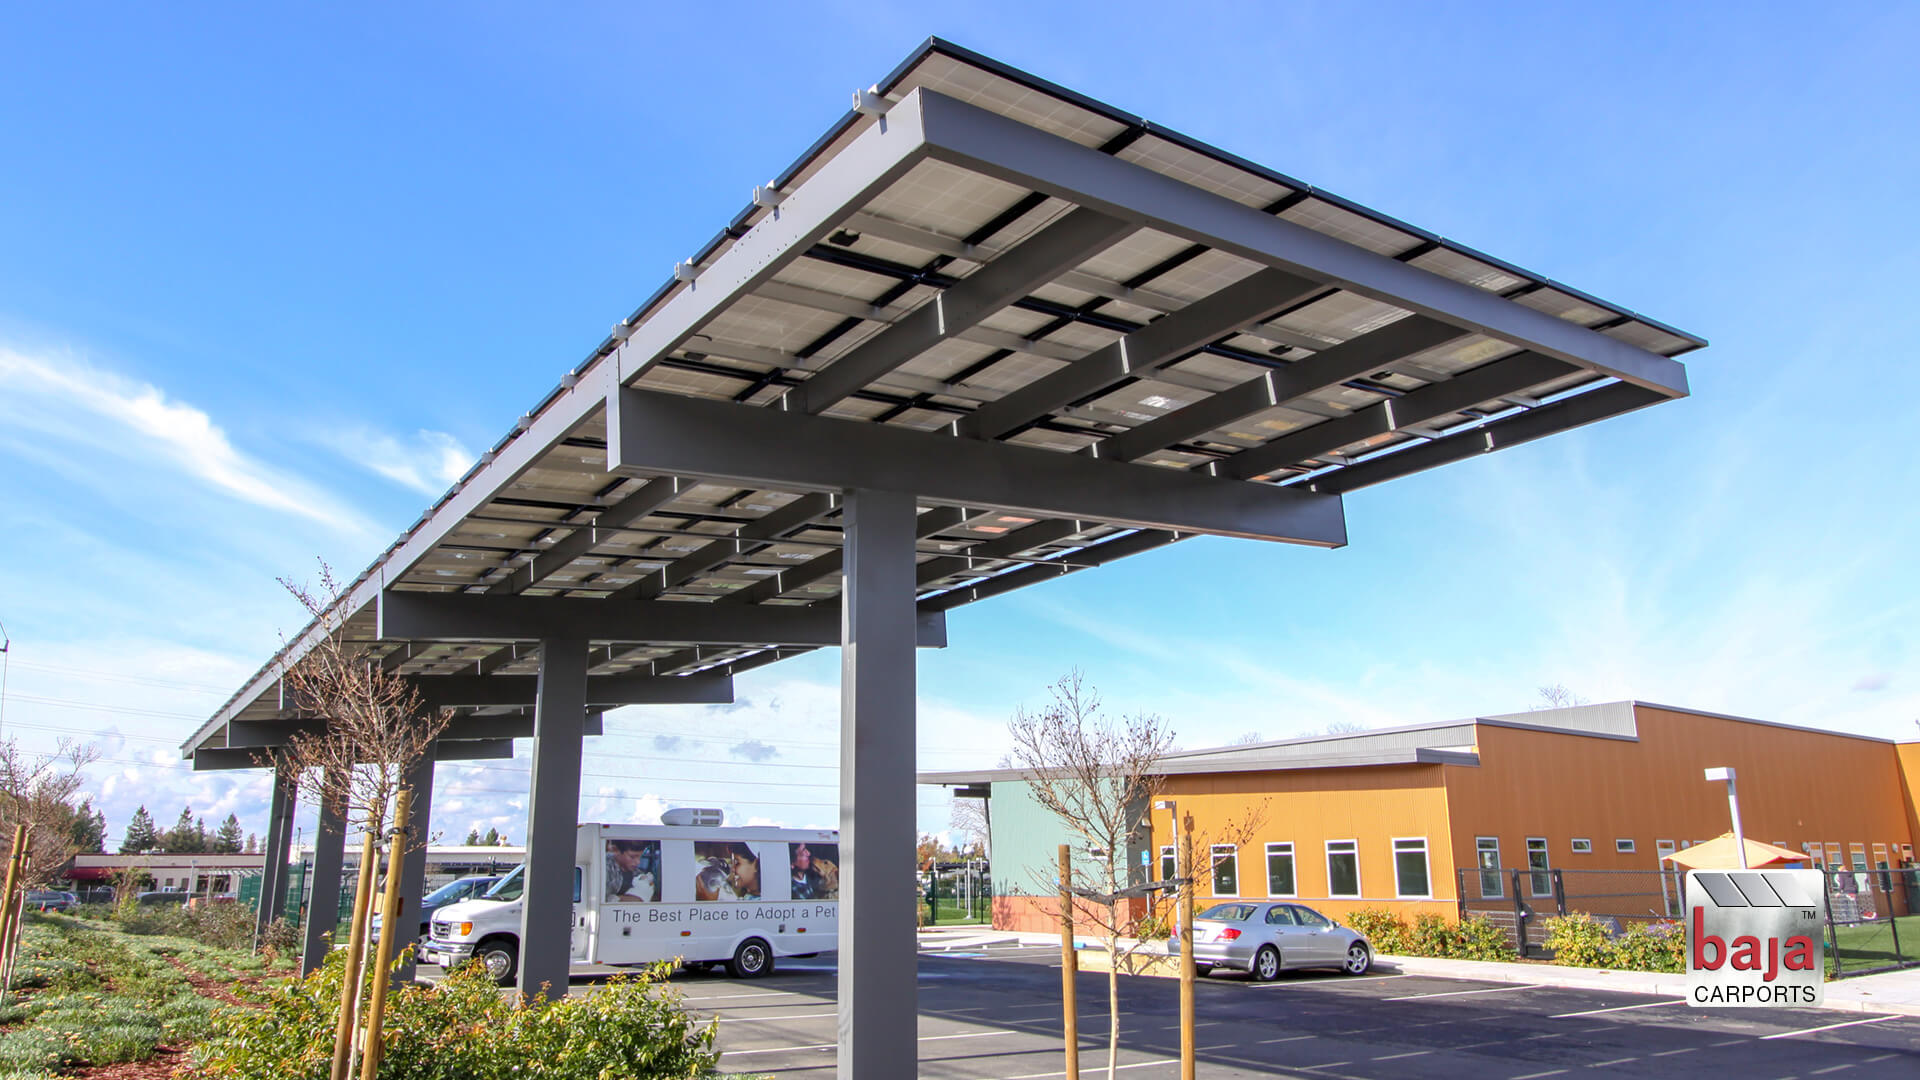 full cantilever offset box solar support system a baja carport structure